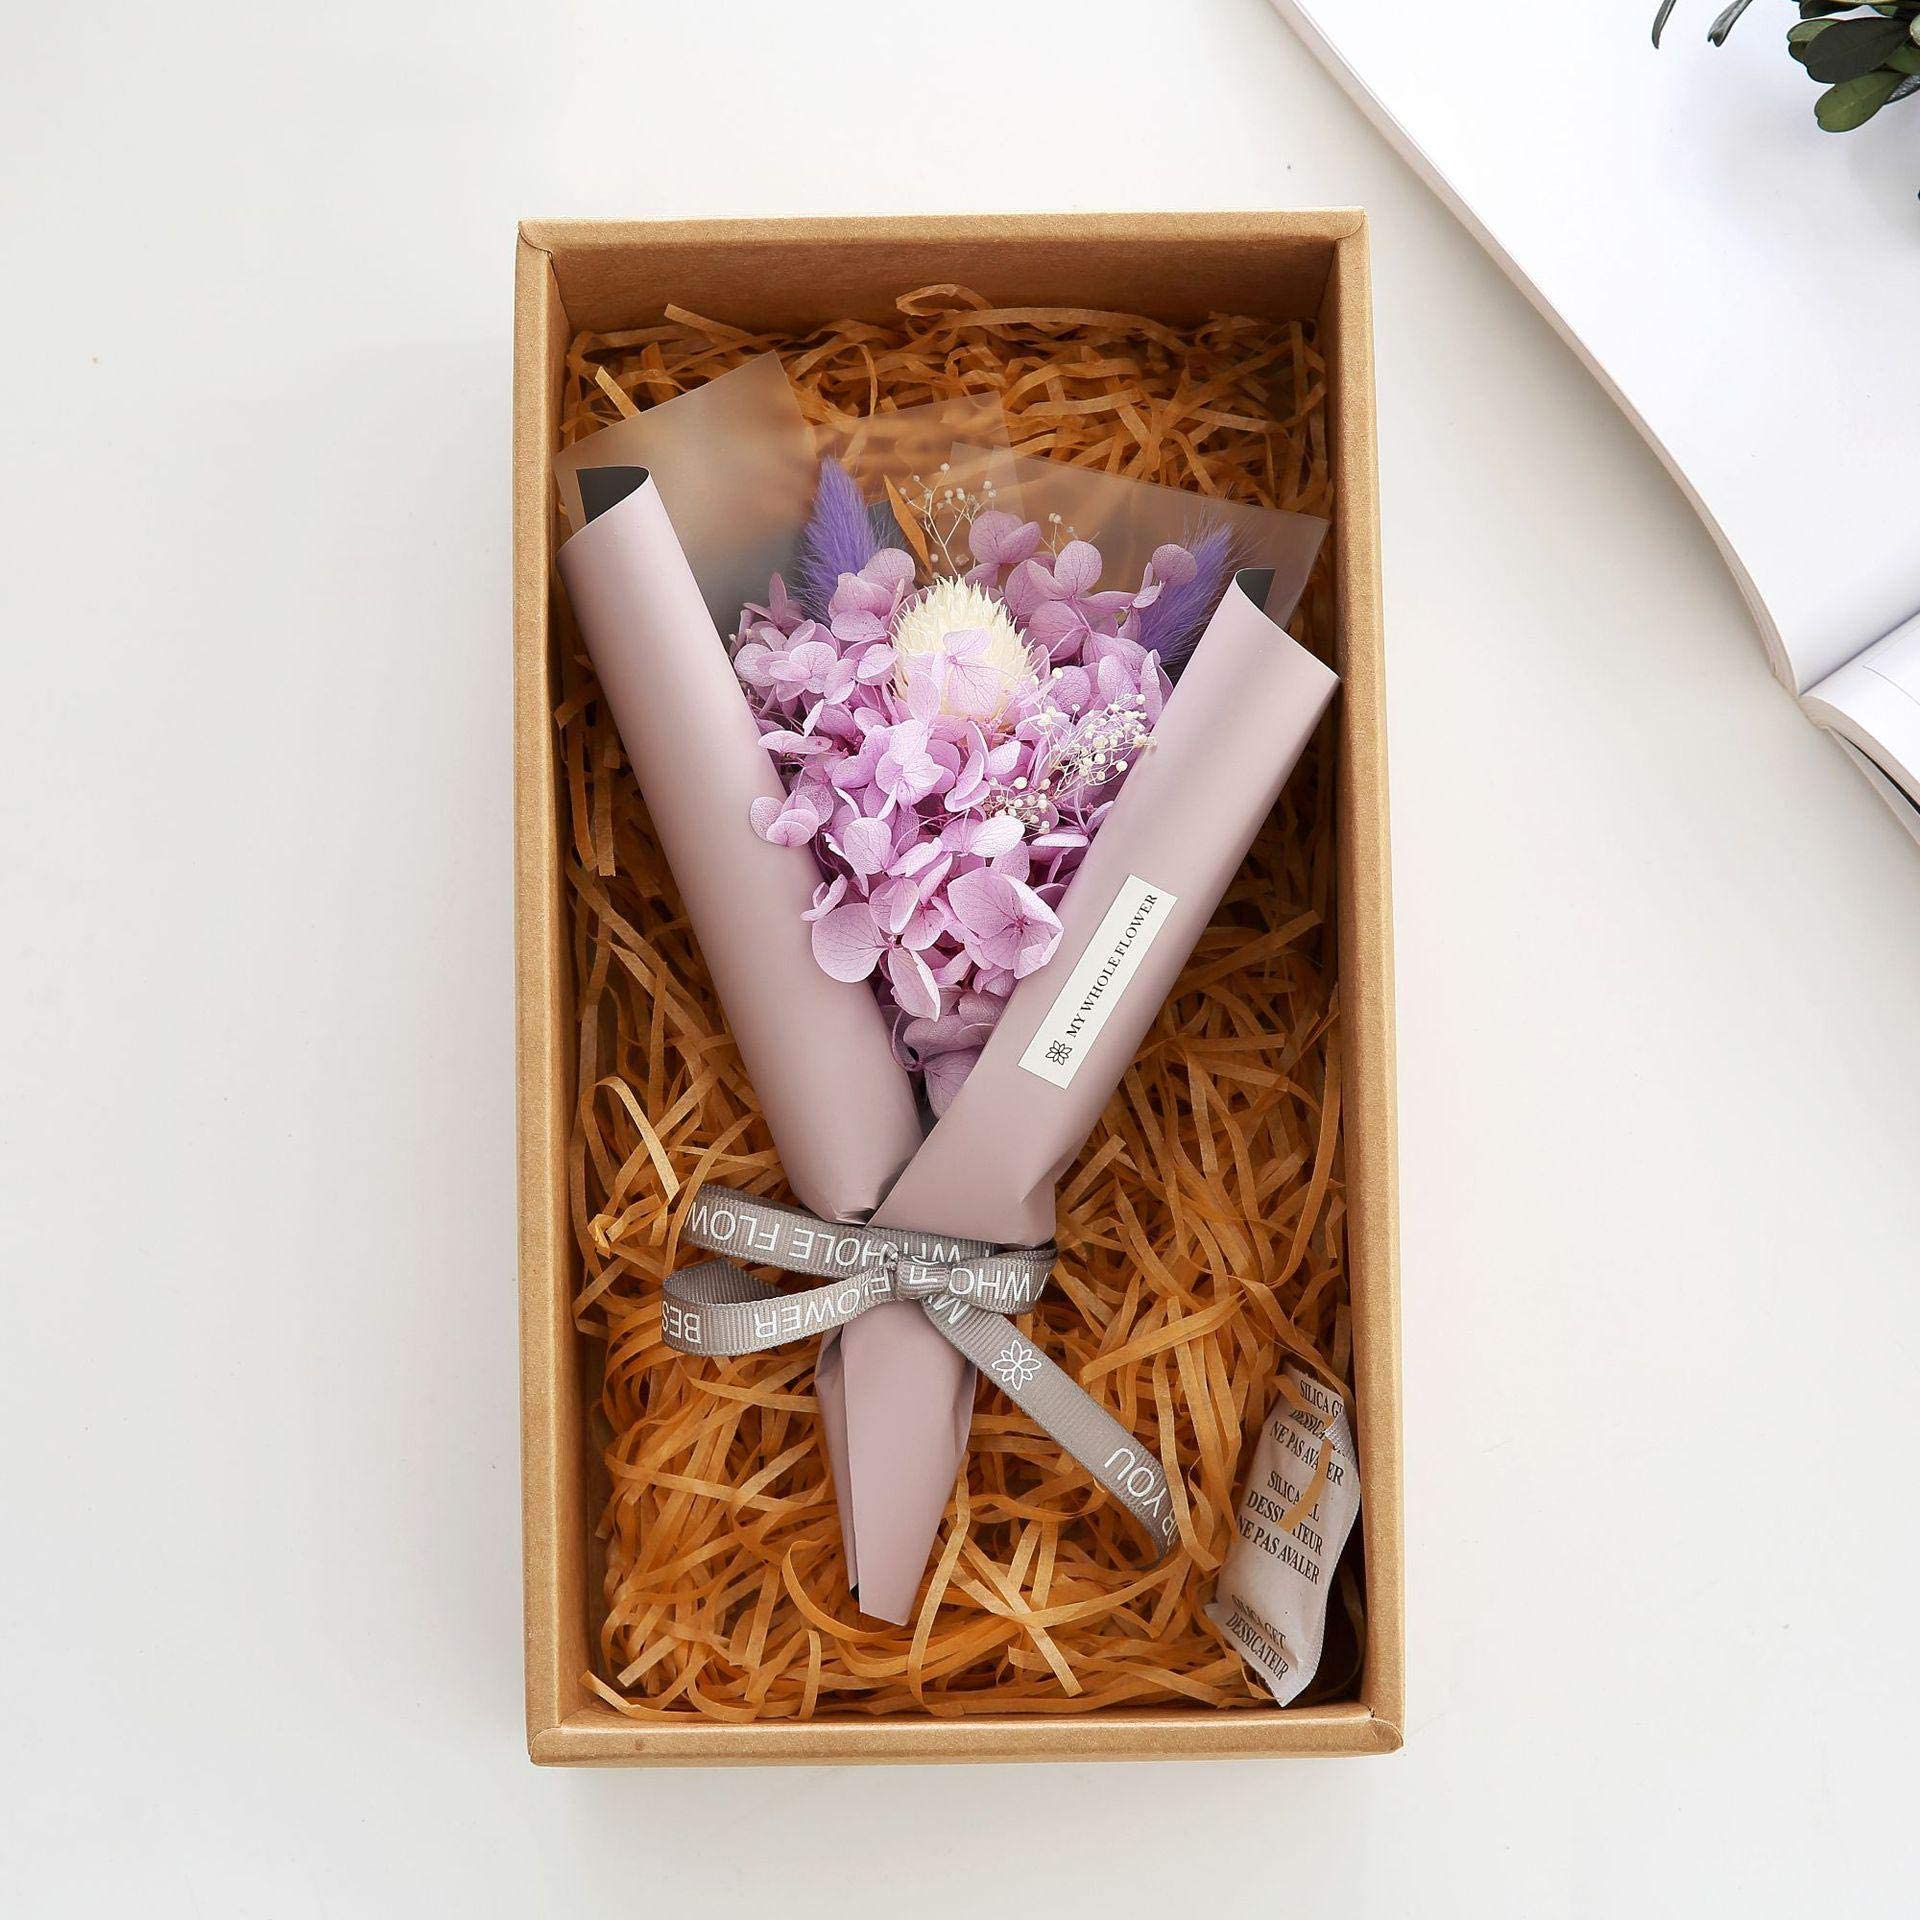 Mini 1 Bunch Flower Bouquet Natural Dried Flower Eternal Bouquet Natural Dried Flower Gift Box Valentine S Day Gift Wedding Decorative Flowers Shop Home Decor Price In Uae Amazon Uae Kanbkam